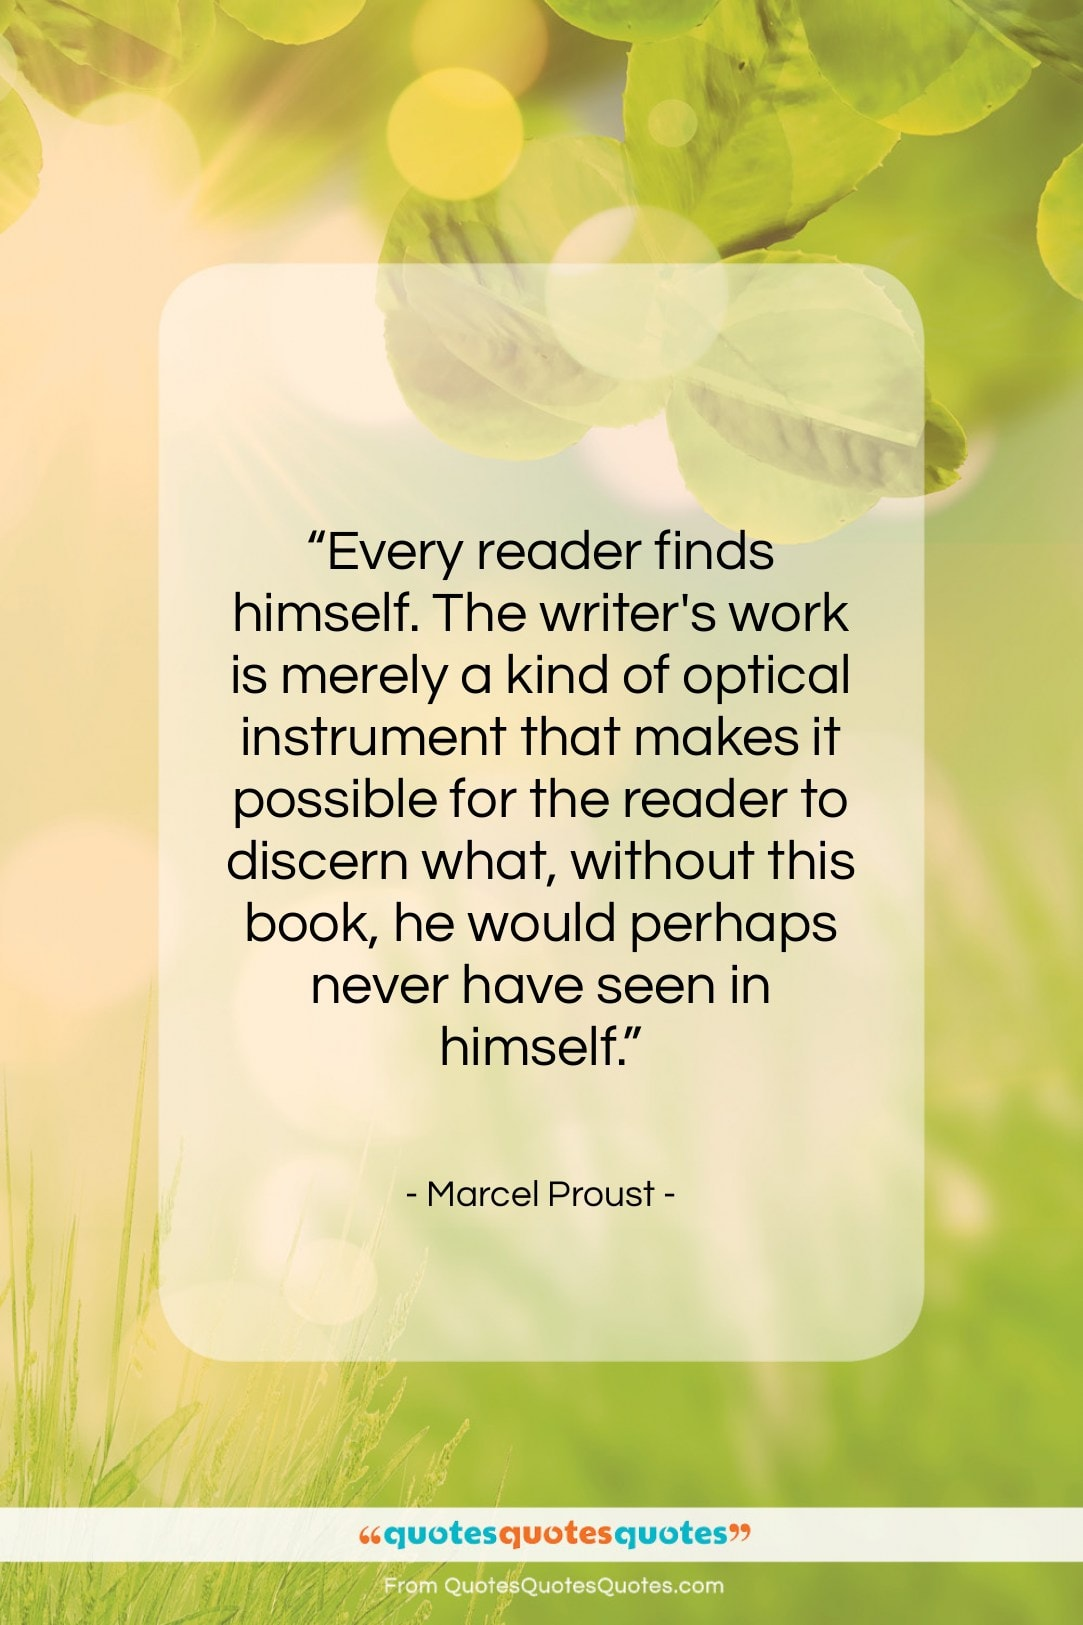 """Marcel Proust quote: """"Every reader finds himself. The writer's work…""""- at QuotesQuotesQuotes.com"""